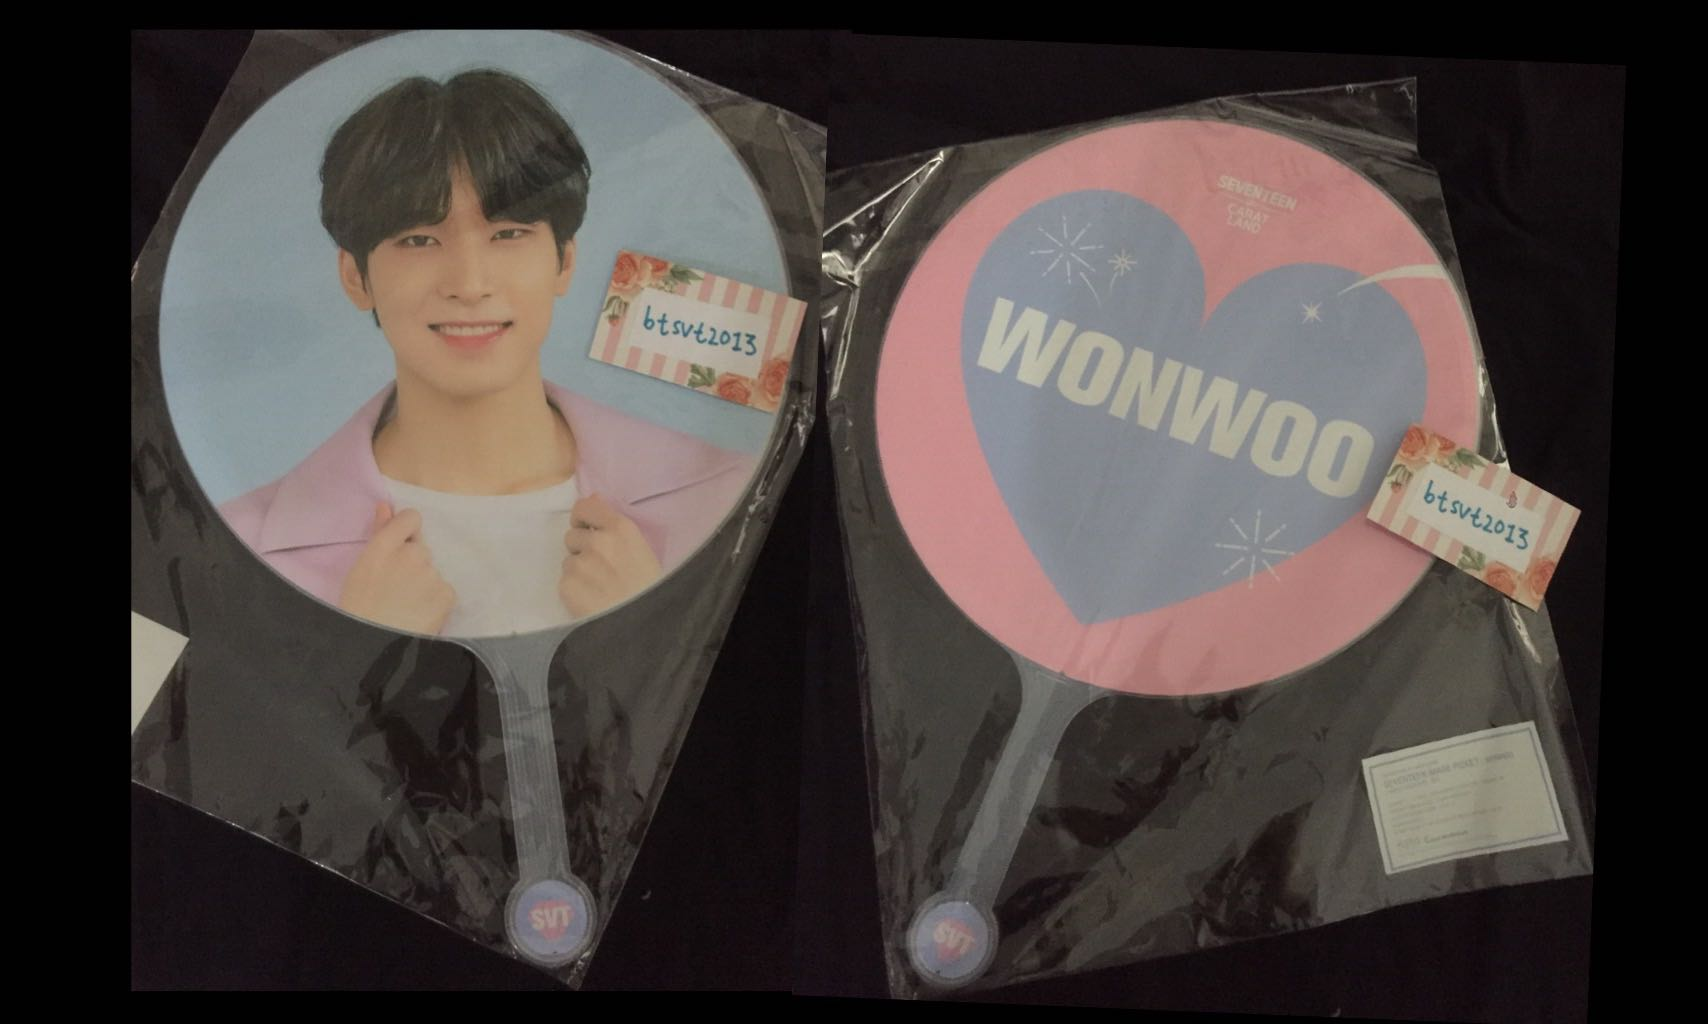 SEALED/NEW OFFICIAL Seventeen Wonwoo 2019 Caratland Image Picket / Uchiwa ‬